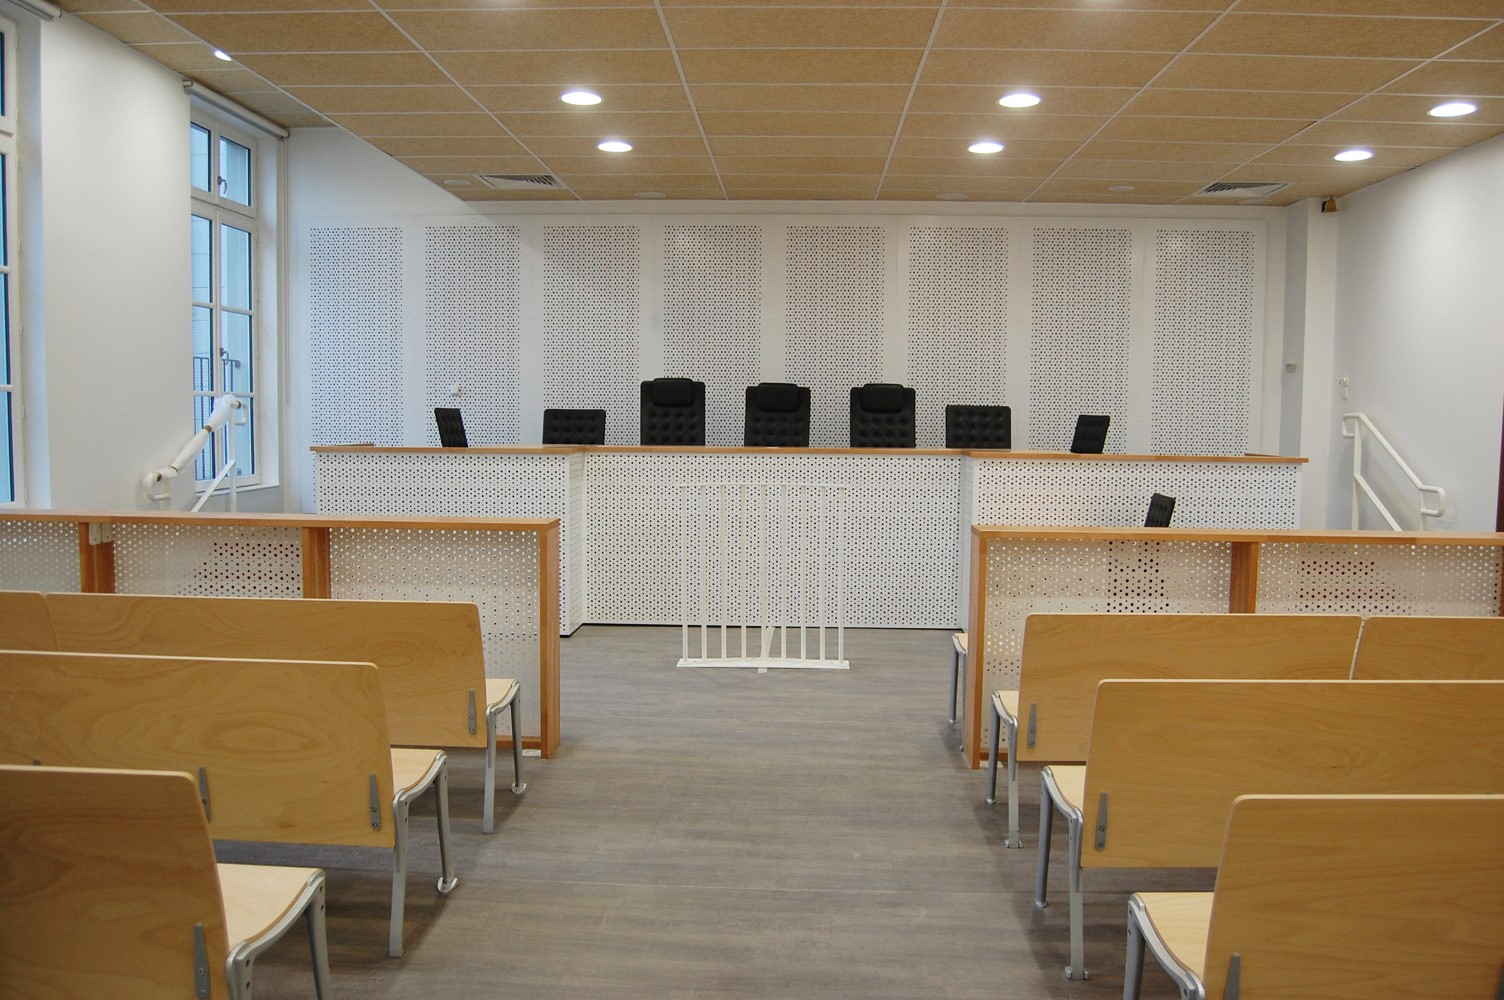 Salle Daudience Mobilier Archtype